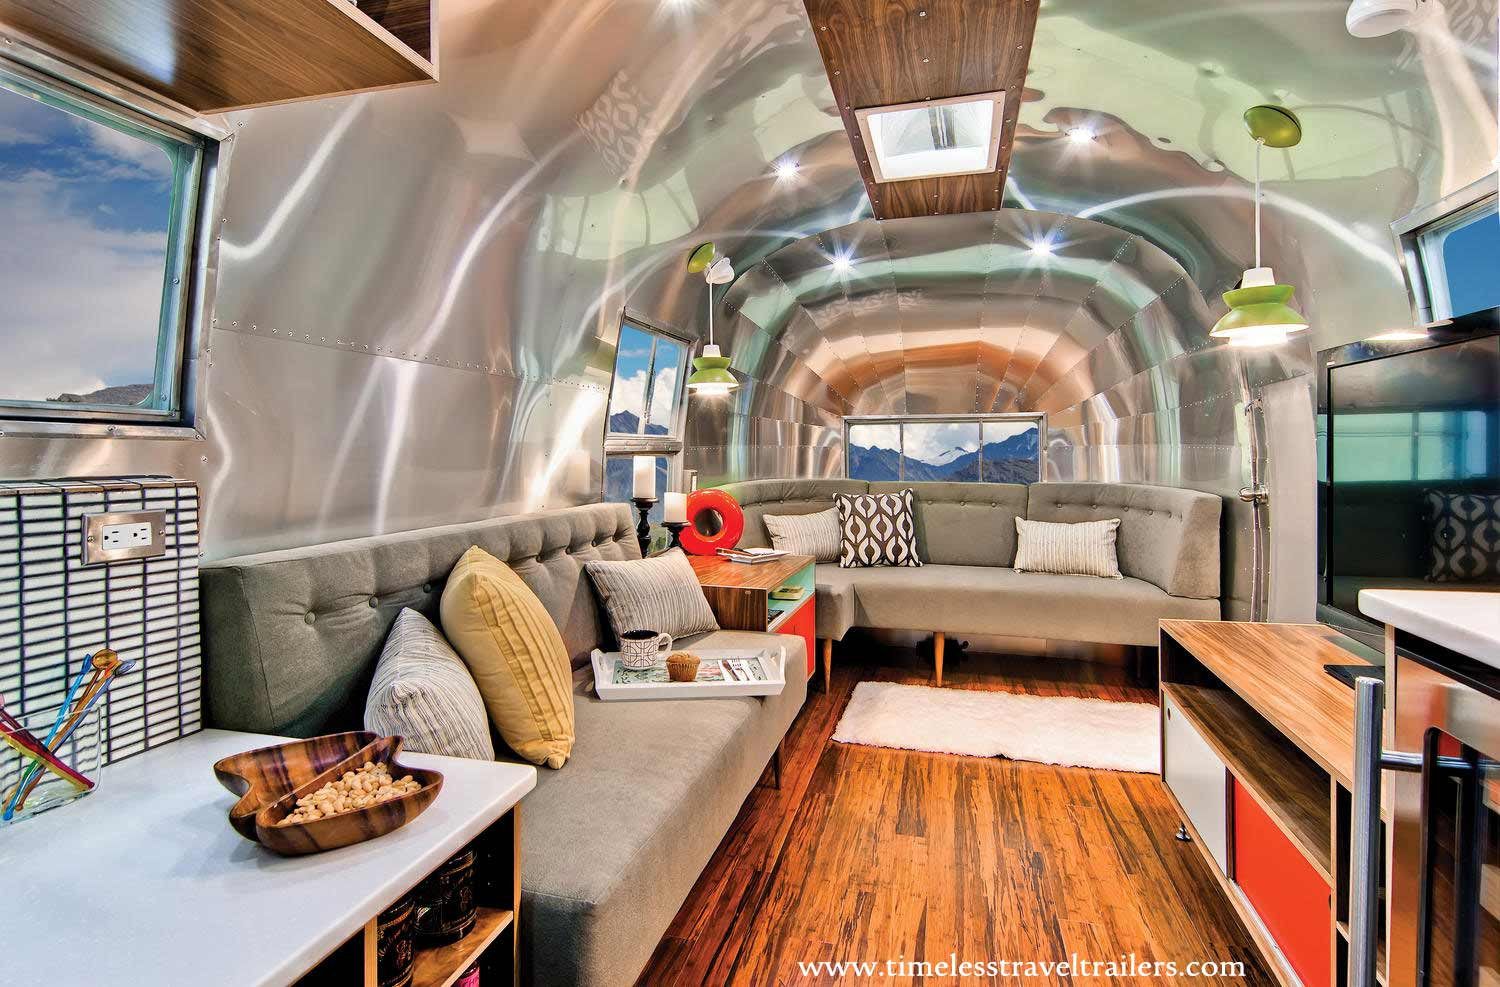 Interesting Airstream Interior Design 35 Stylish and Gorgeous Airstream Interior Design Ideas